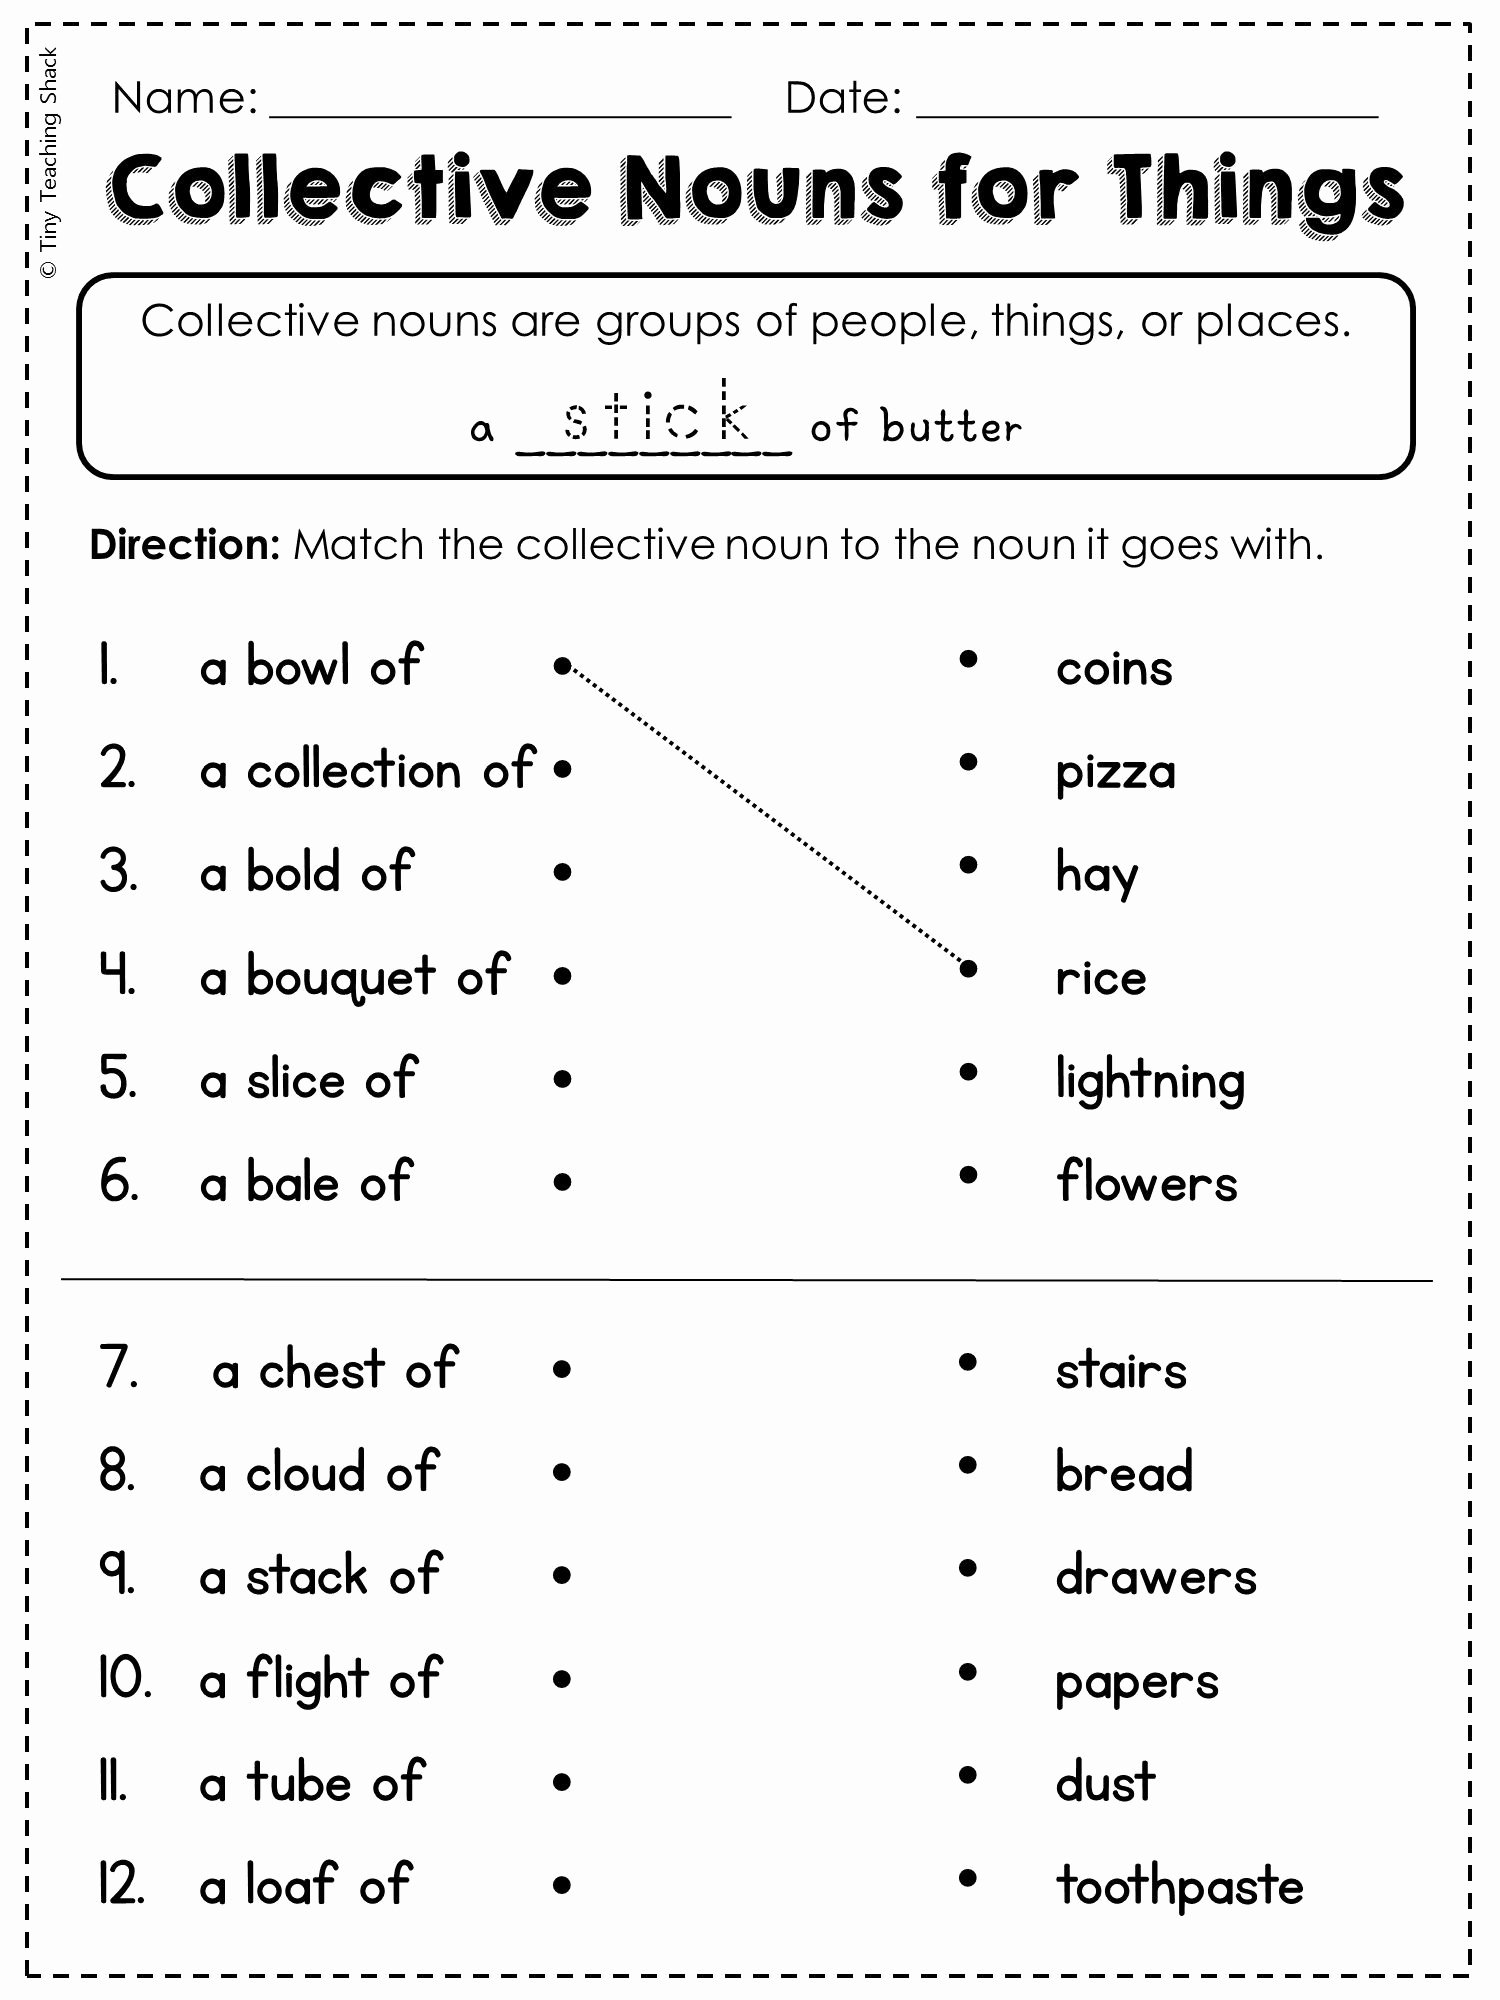 Proper Nouns Worksheet 2nd Grade Unique Pin On Mrs Sziggy 2nd Grade